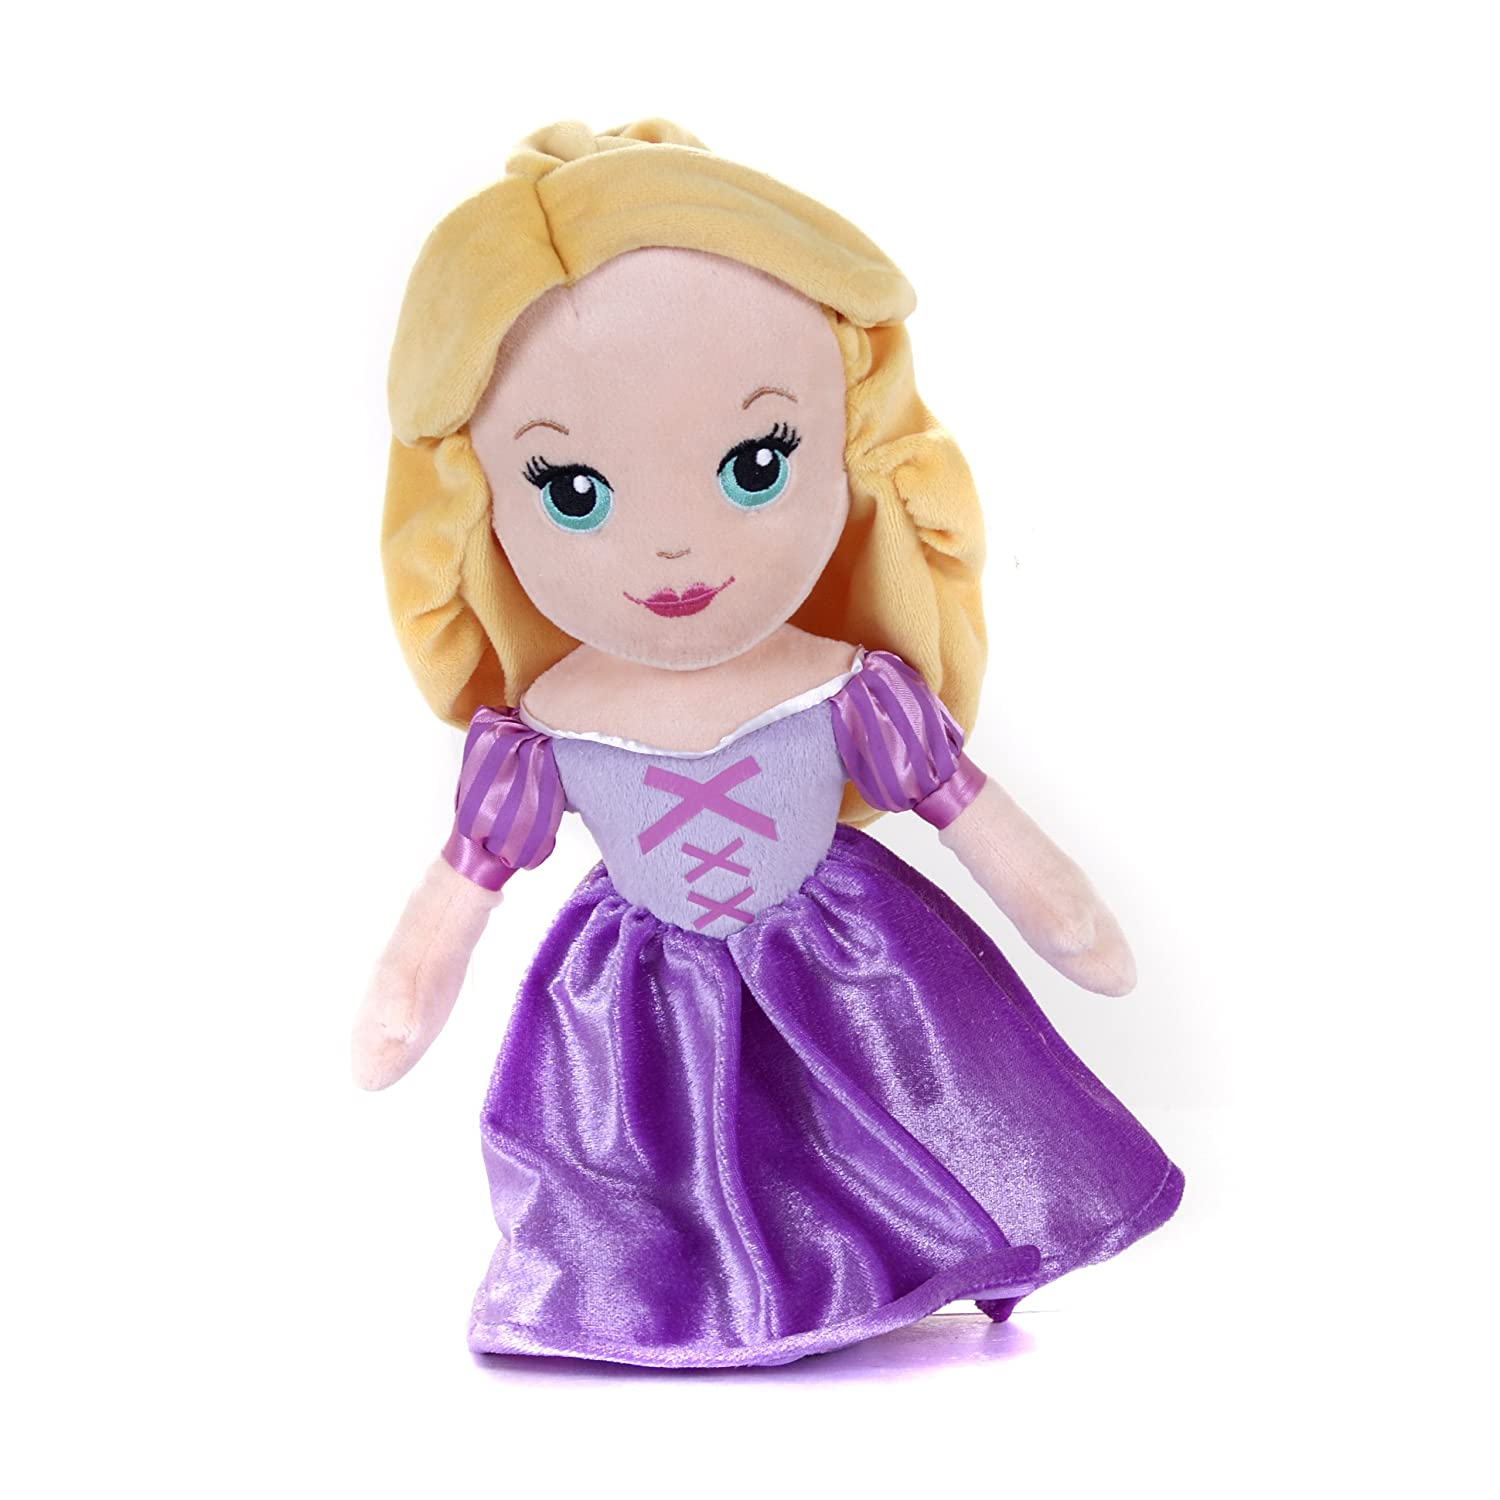 Disney Princess 10 inch Rapunzel Doll Plush Toy Disney Princess